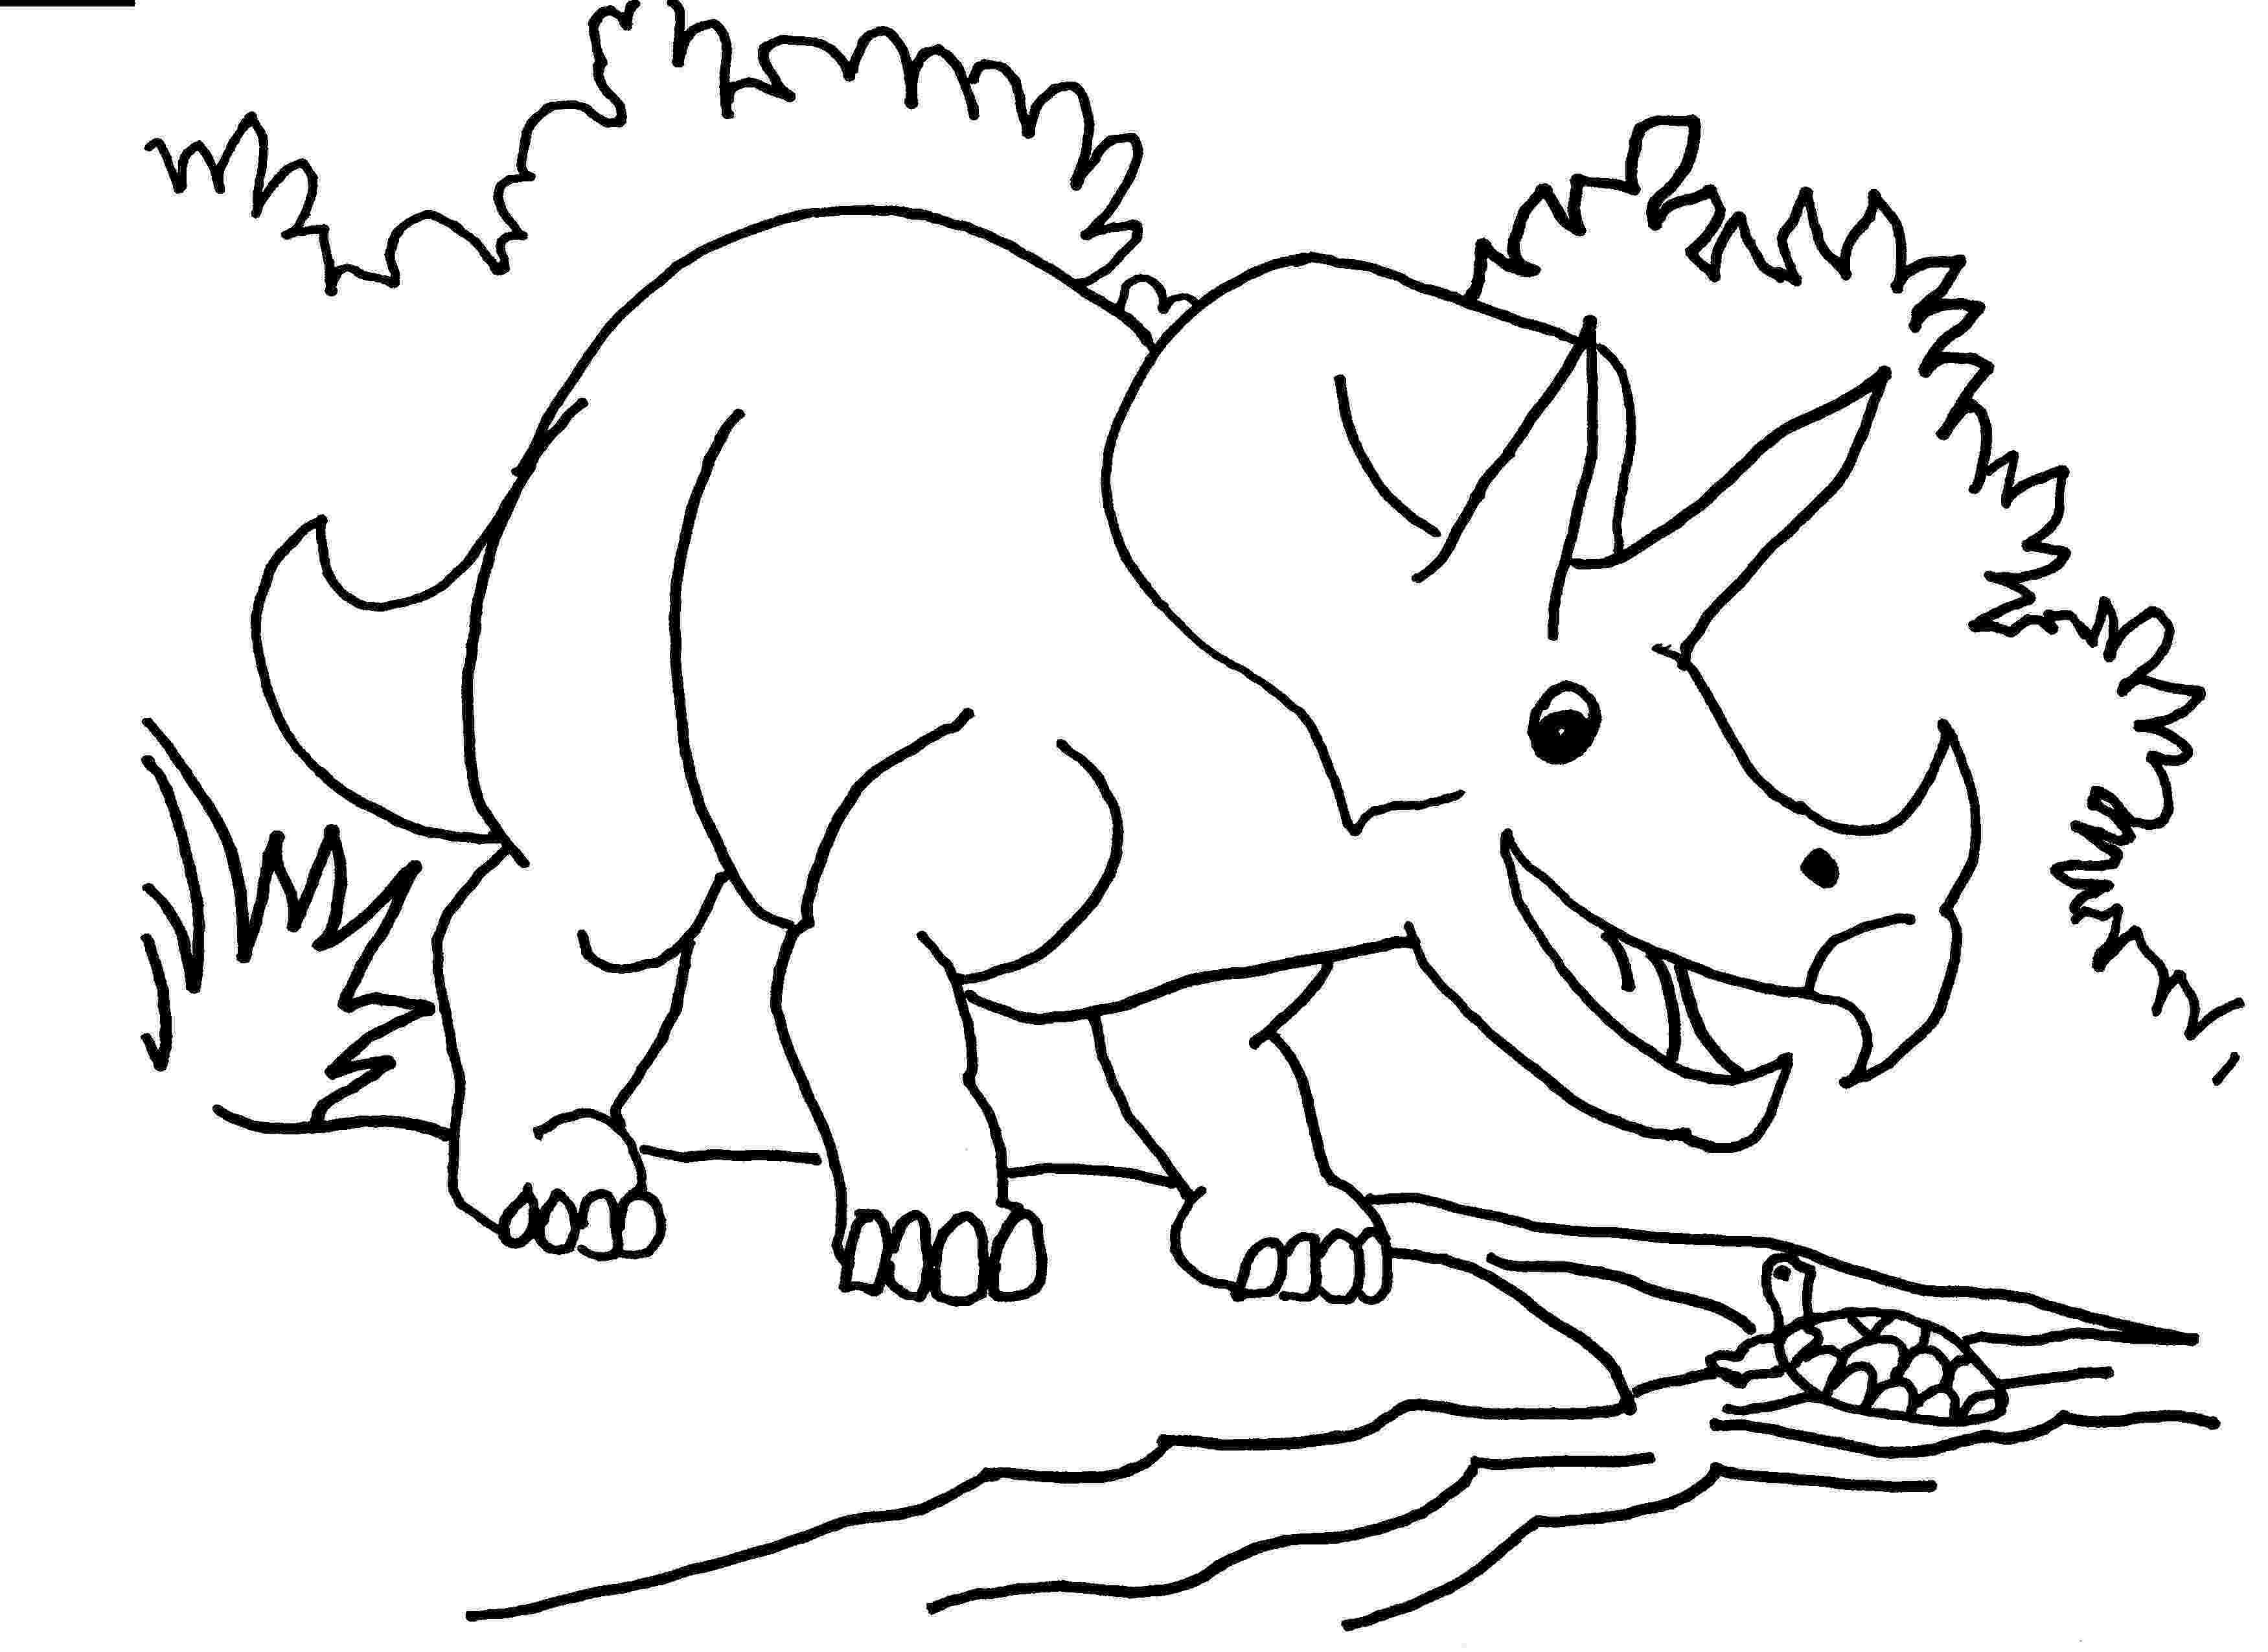 triceratops coloring pages printable triceratops coloring pages for kids cool2bkids pages triceratops coloring